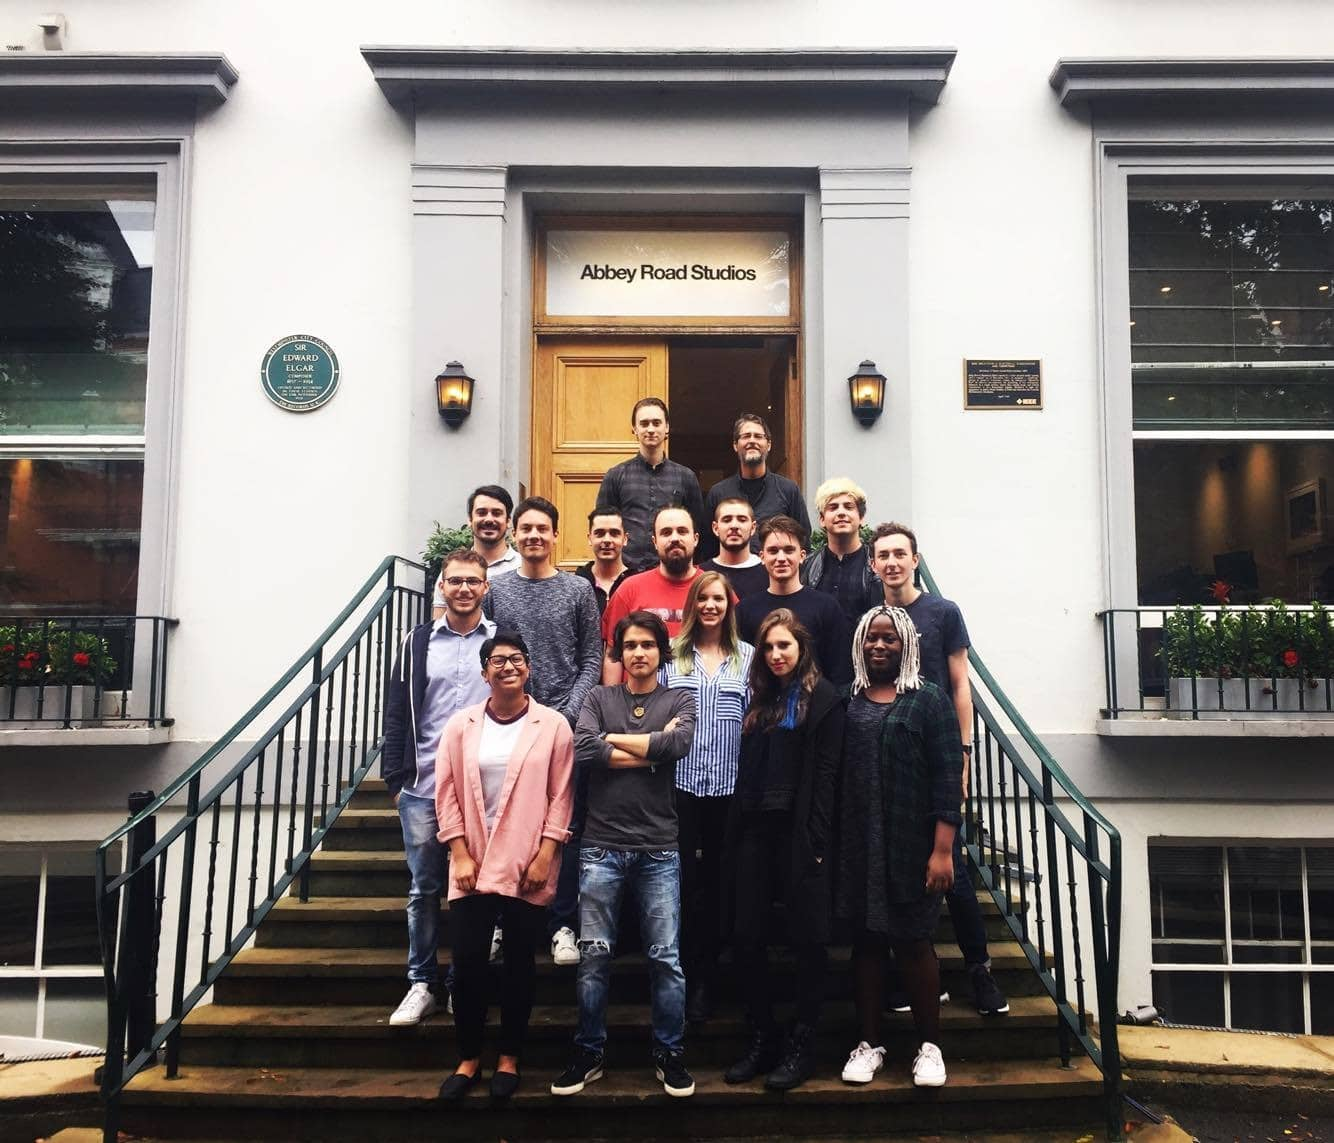 Our new students in front of Abbey Road Studios